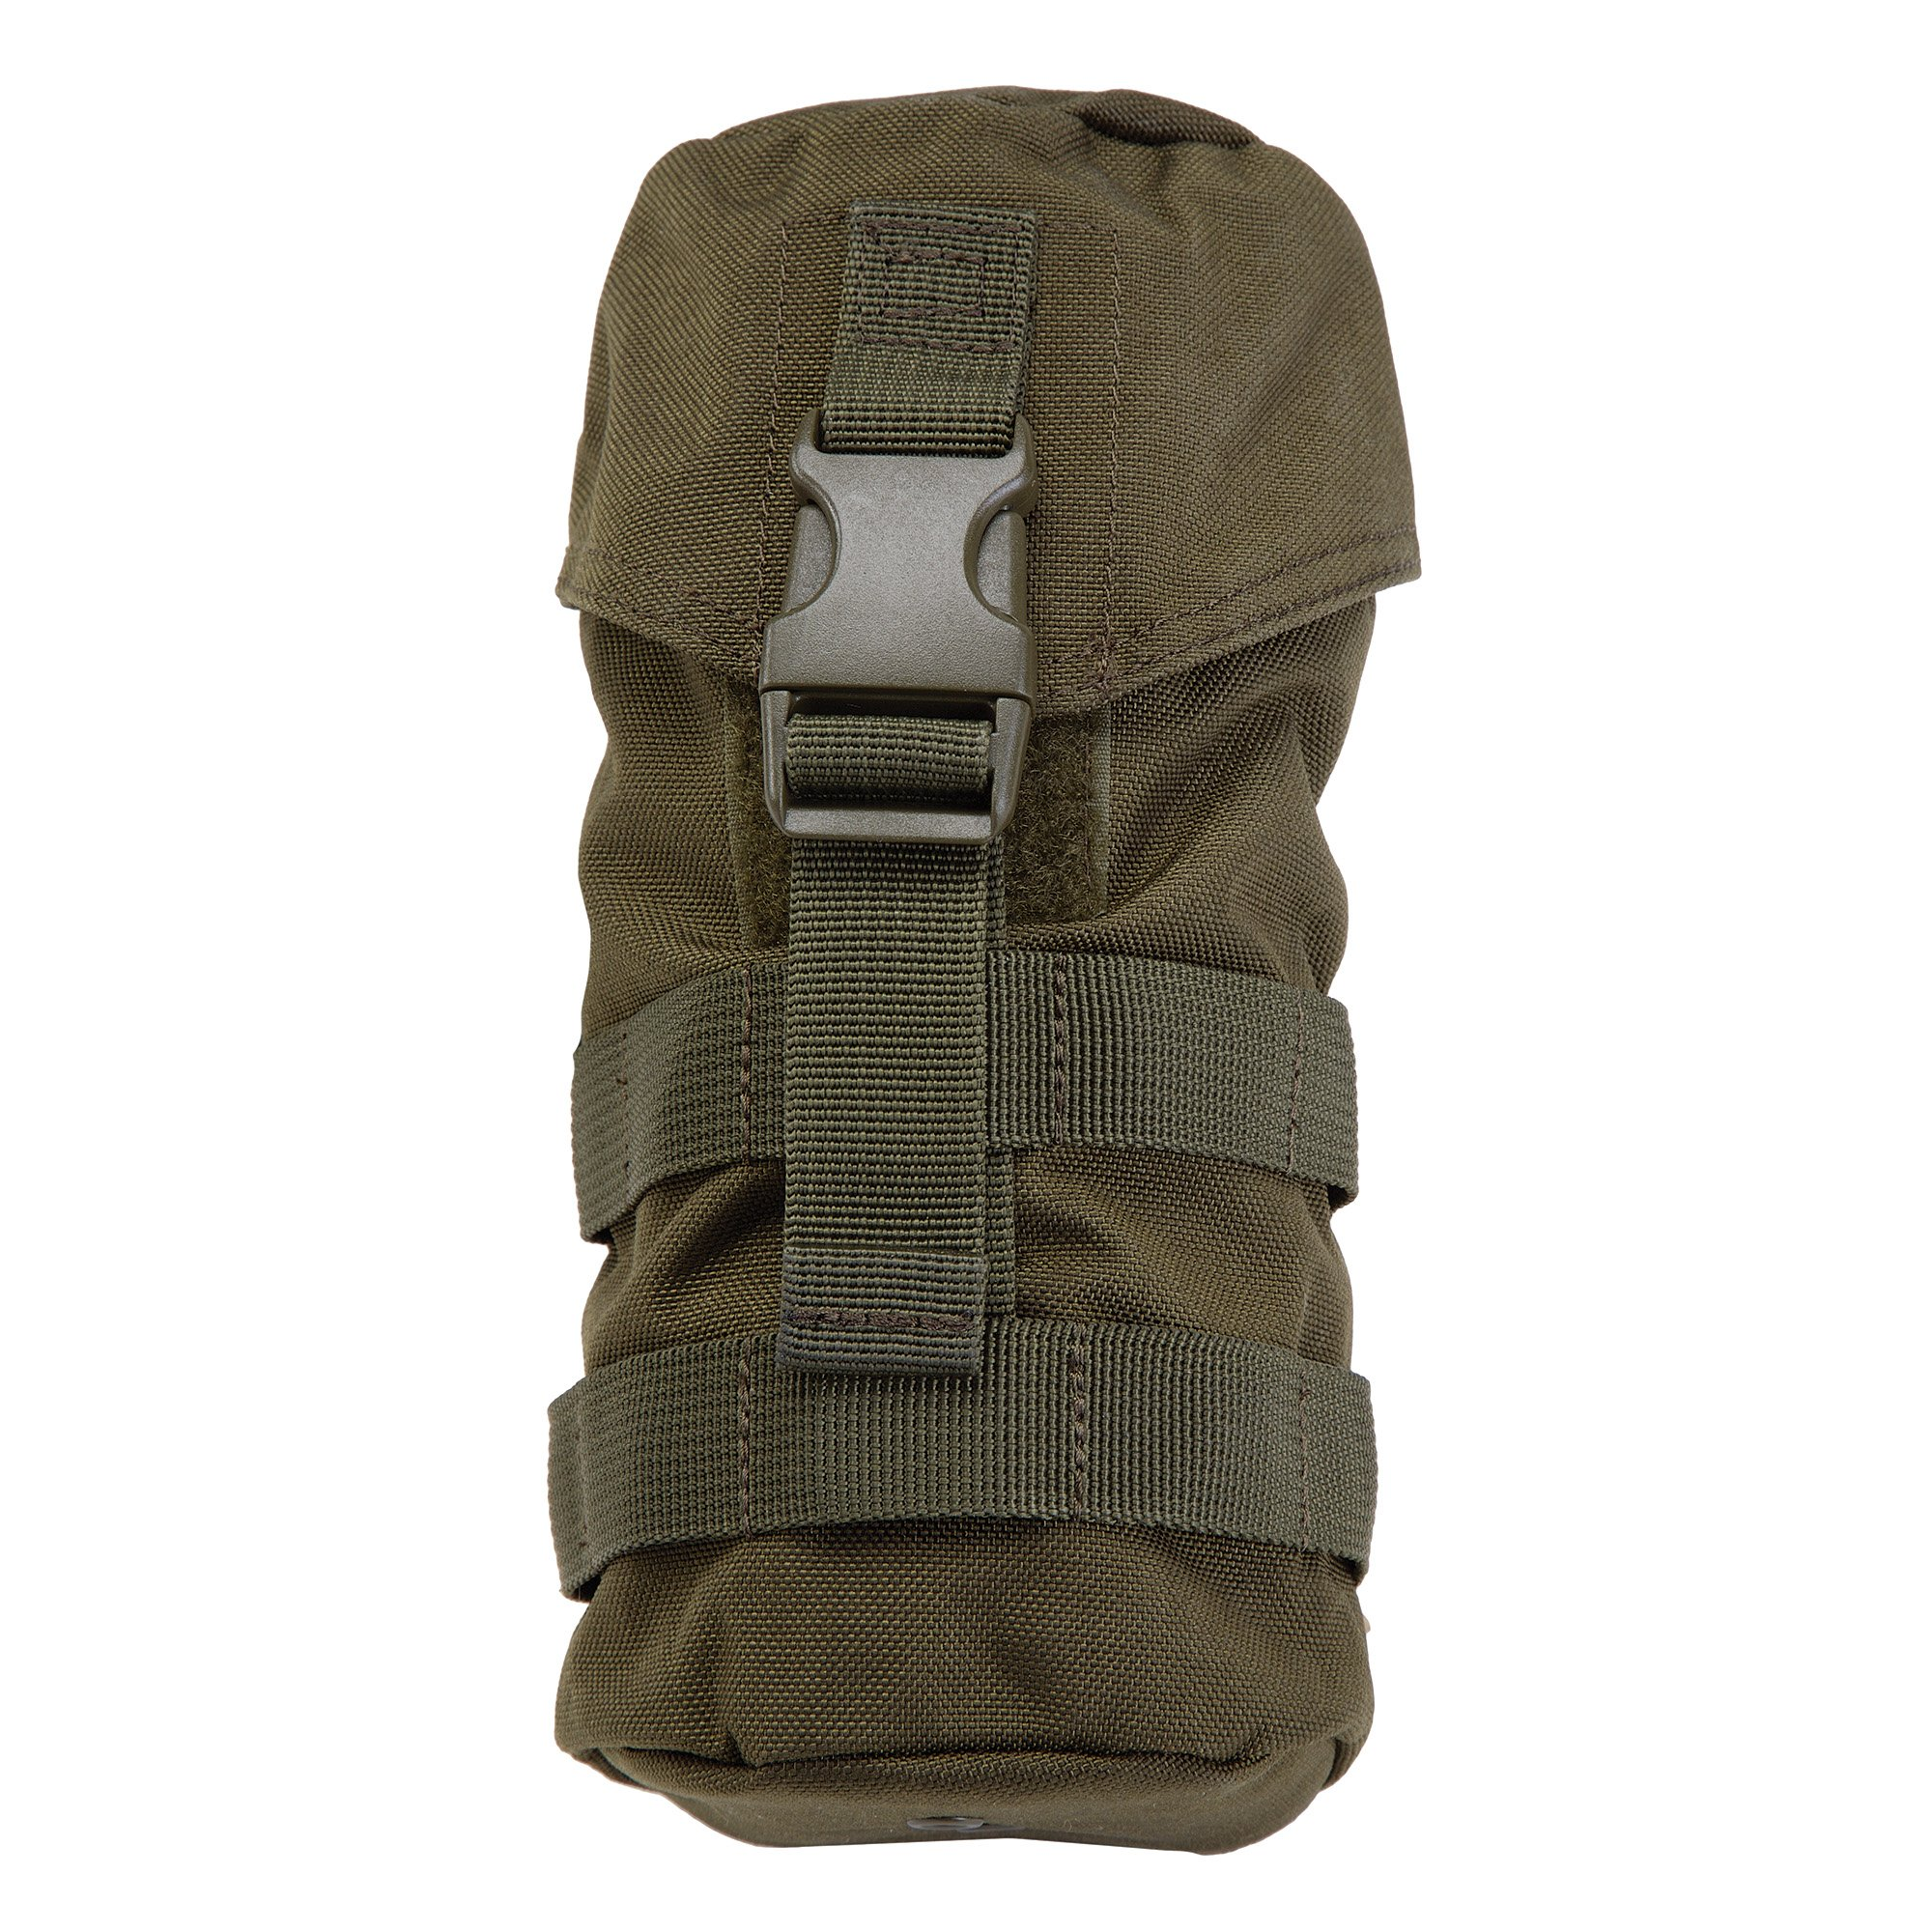 H2O CARRIER POUCH – Tac OD